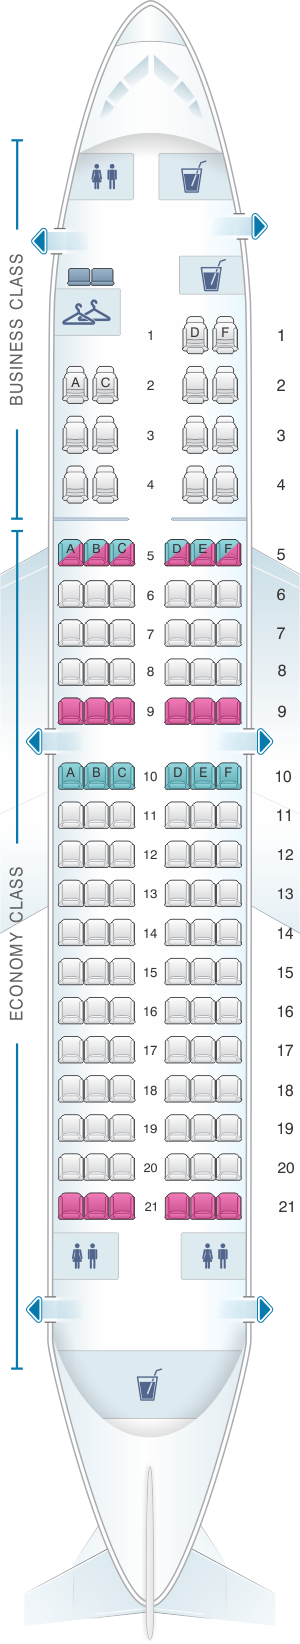 Seat map for TAROM Boeing B737 700 116pax